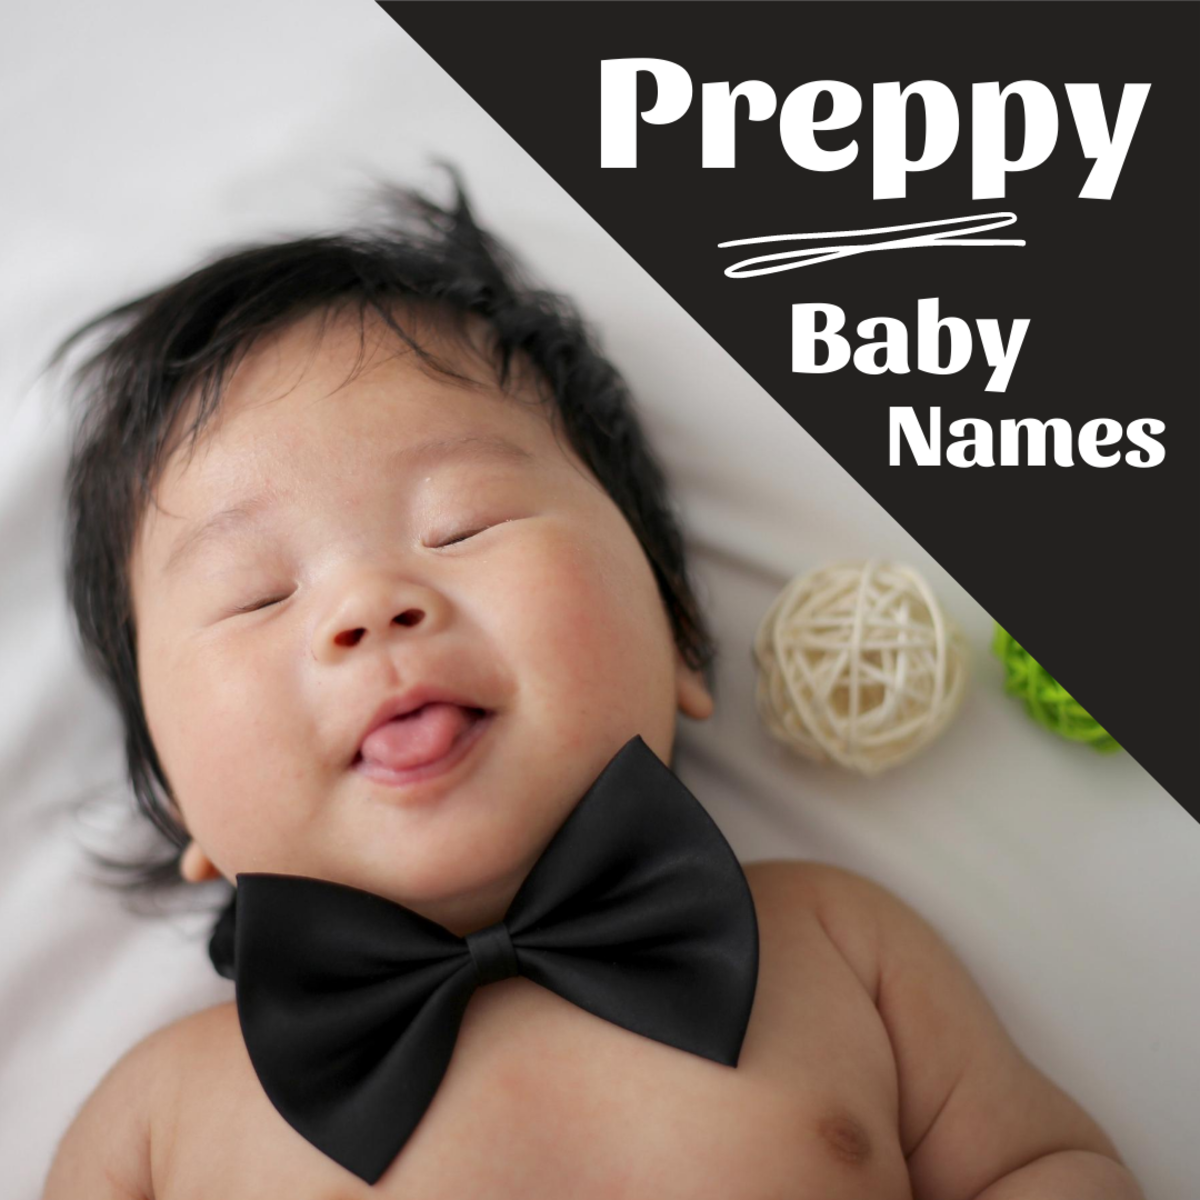 Looking for a sophisticated-sounding name for your soon-to-be baby boy or girl? Find 100+ options here.